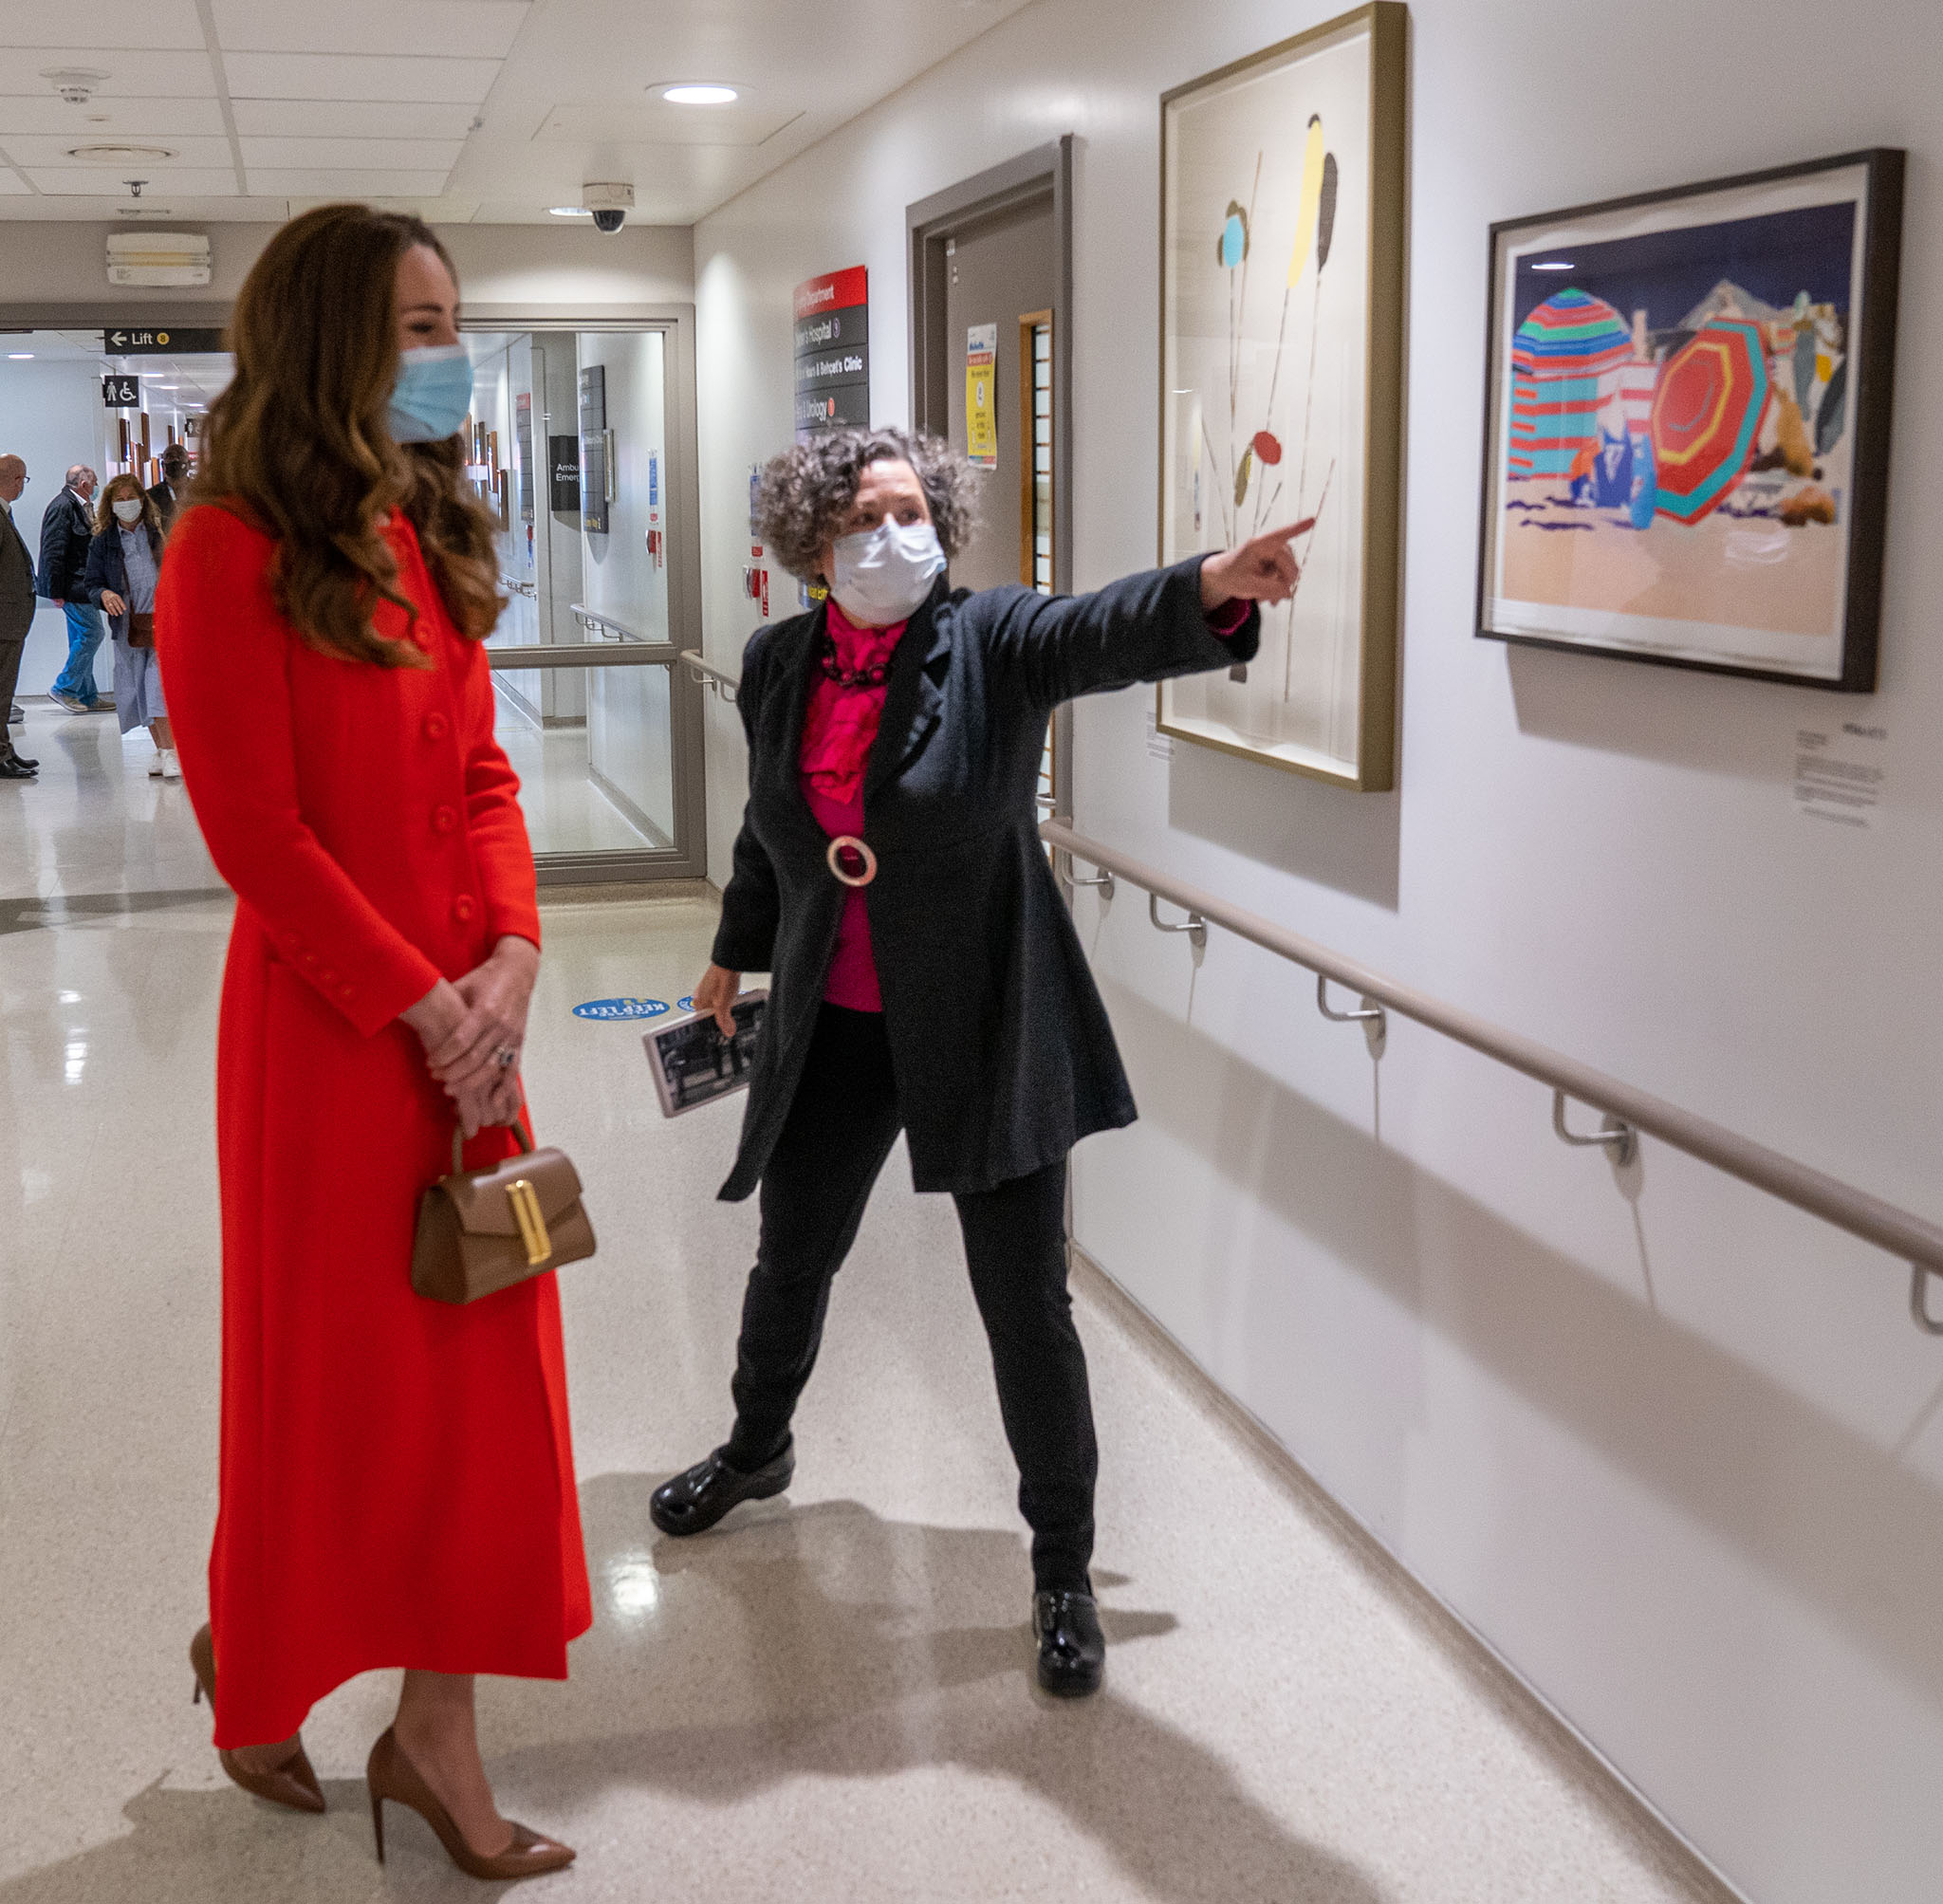 Duchess of Cambridge Kate Middleton visits the National Portrait Gallery to celebrate the launch of her Hold Still book on May 6, 2021